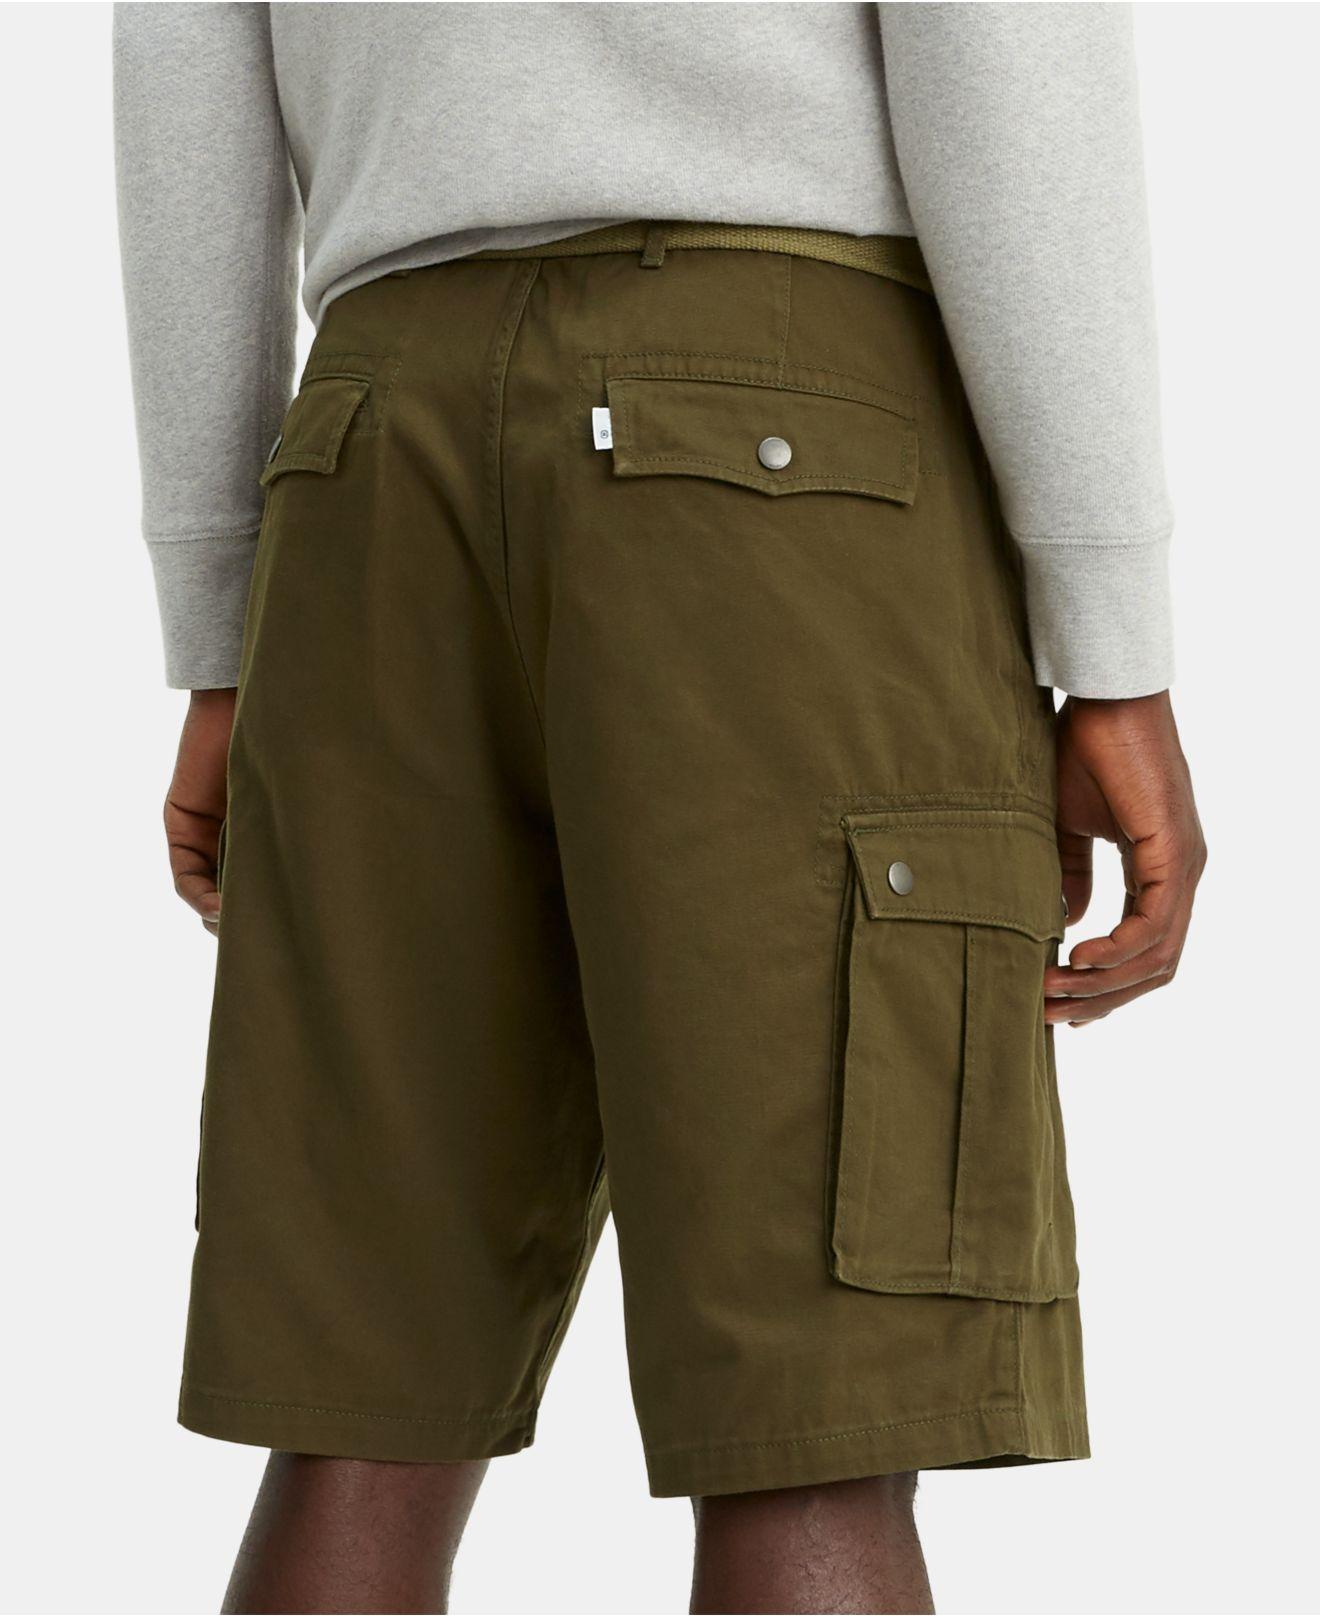 acbd5f4214 Lyst - Levi's Snap Cargo Shorts in Green for Men